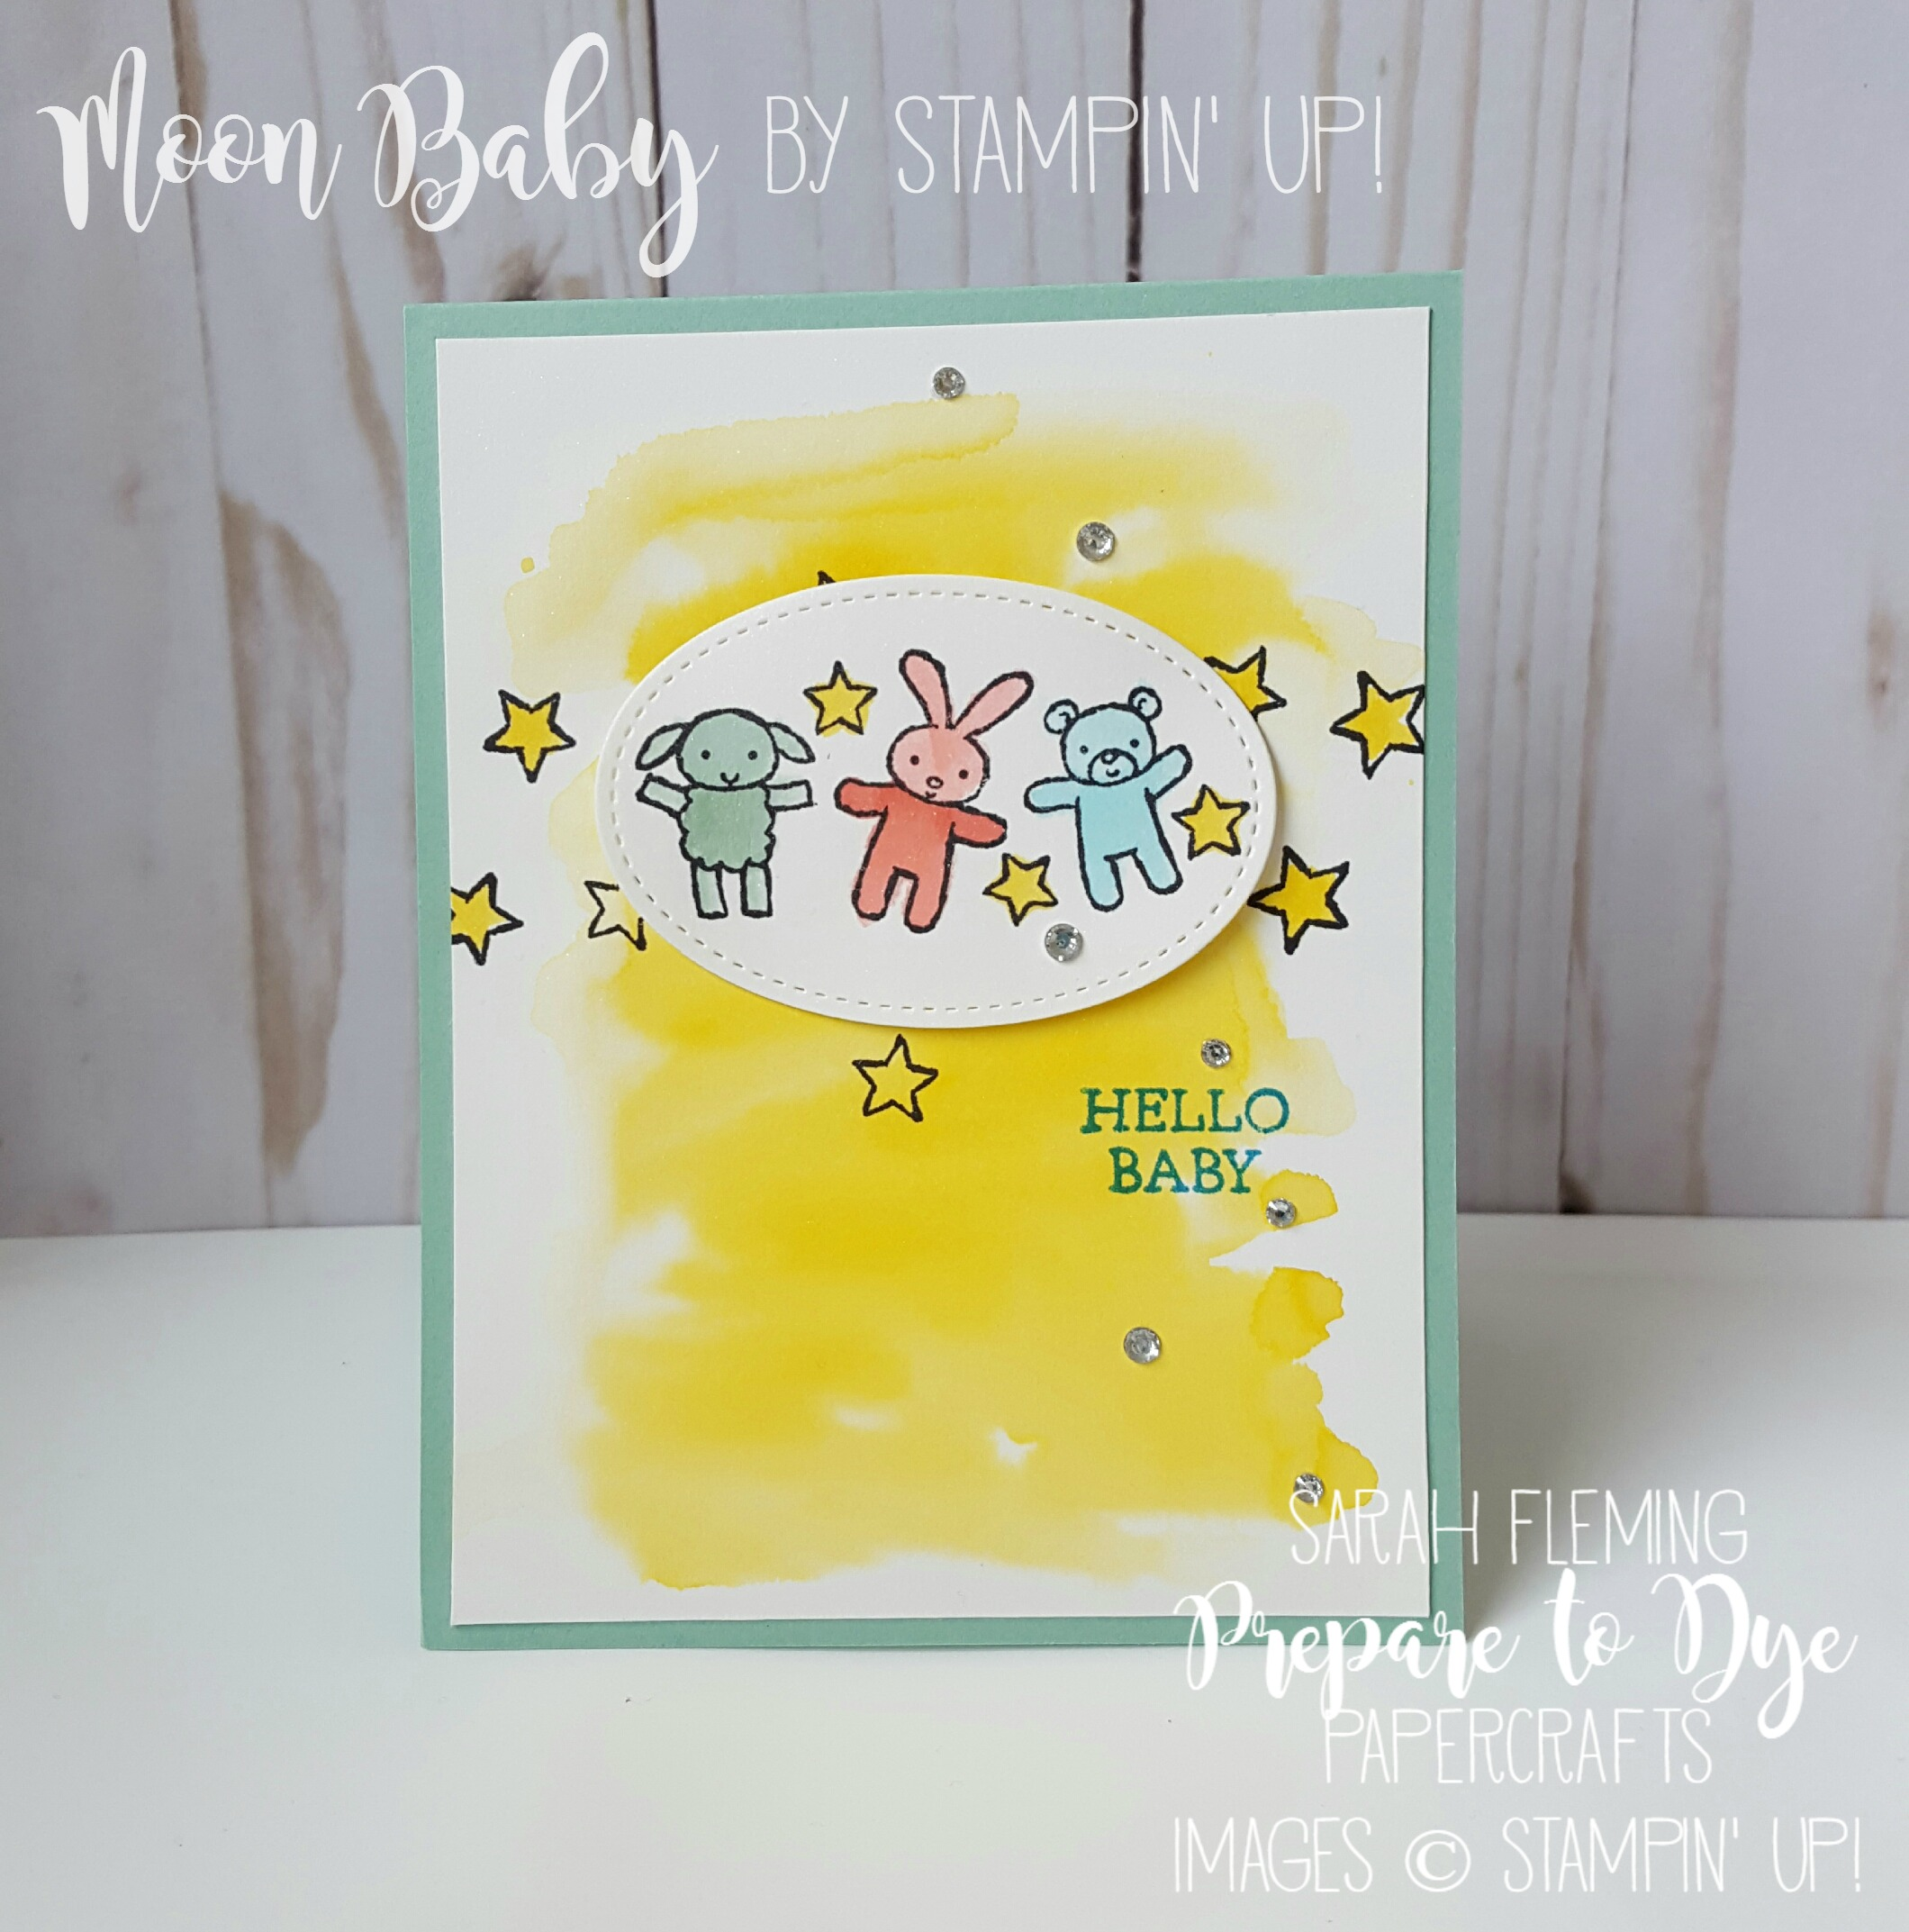 Moon Baby by Stampin' Up! with a watercolor background - handmade baby card - Sarah Fleming - Prepare to Dye Papercrafts - #GDP072